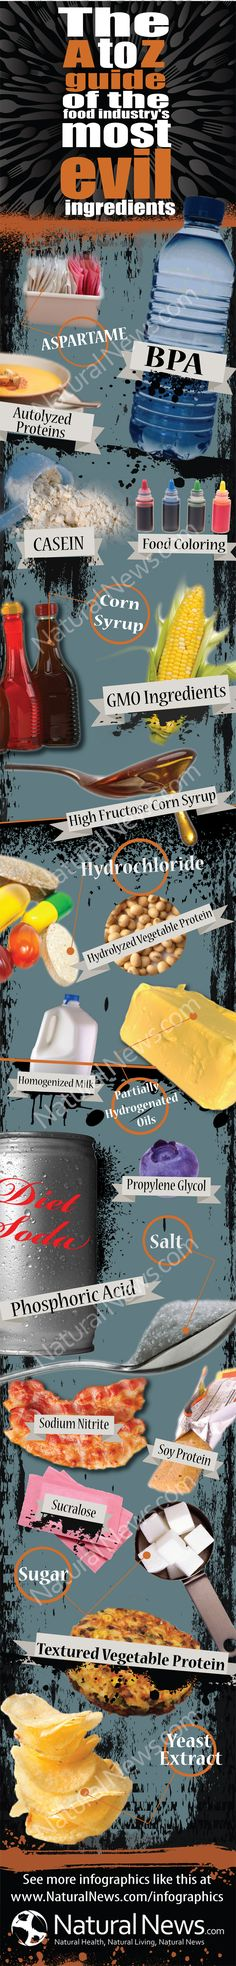 The A to Z guide of the food industry's most evil ingredients by The Health Ranger #health #food